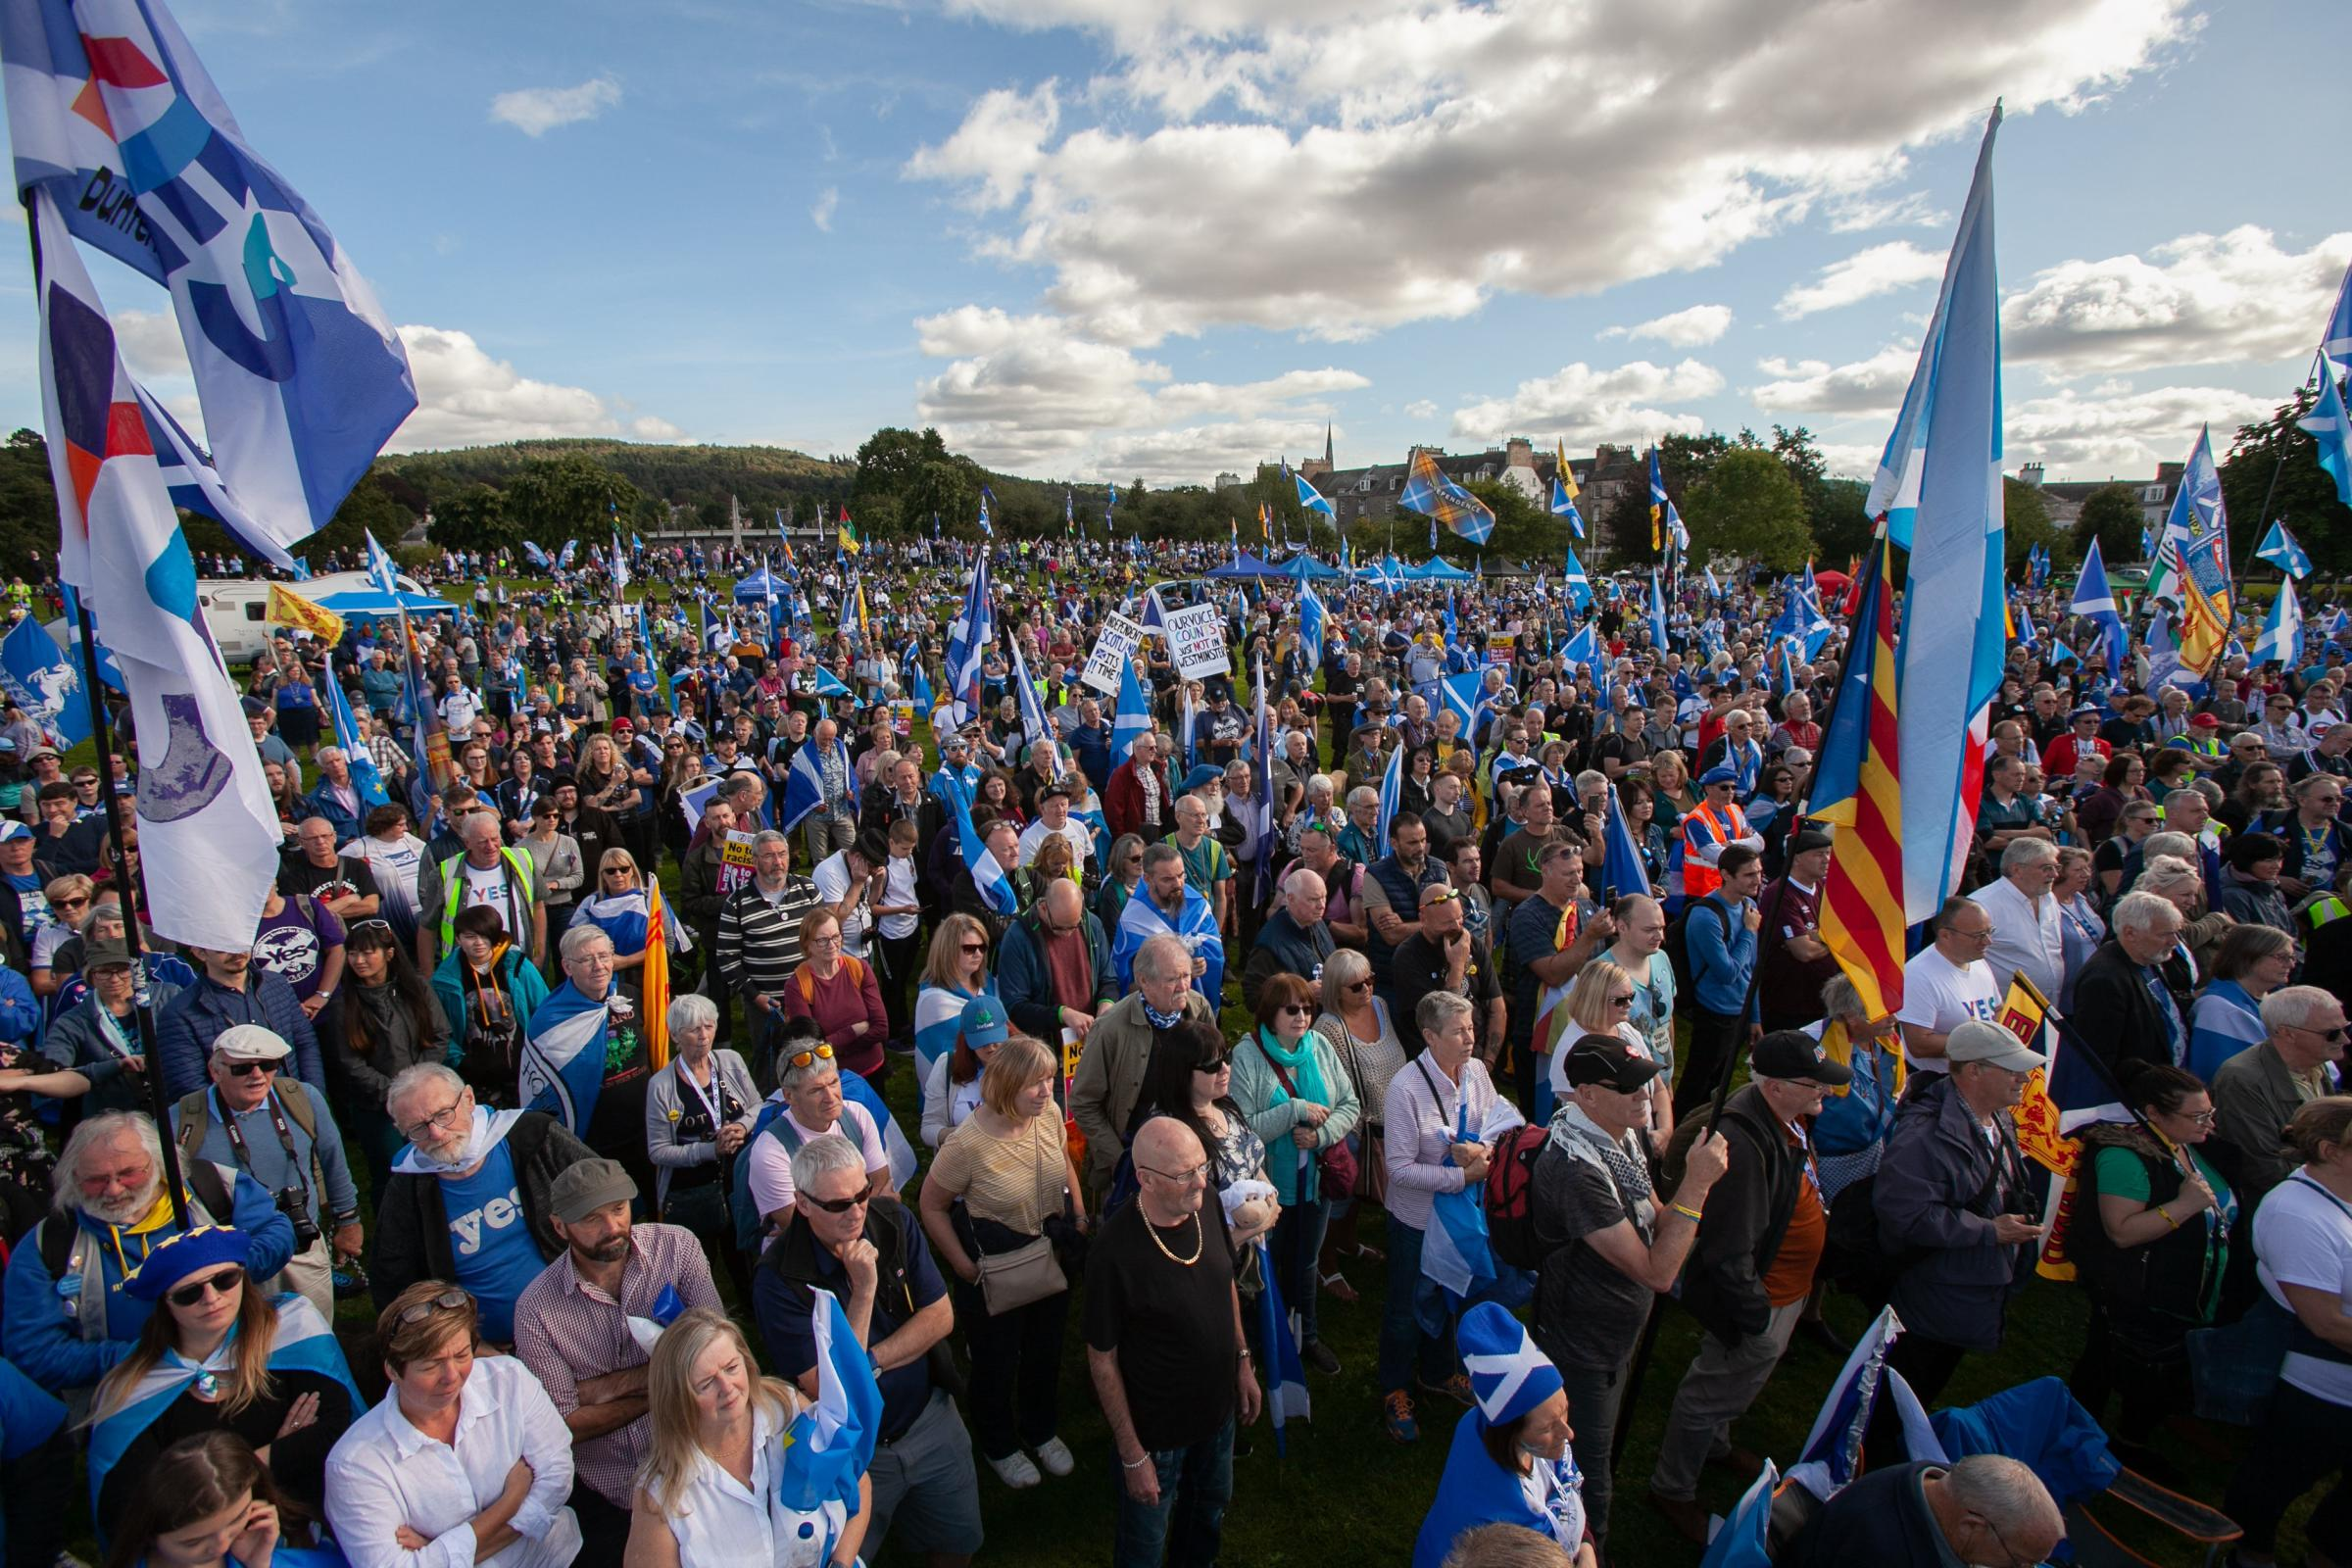 Petition launched to require two-thirds majority for independence